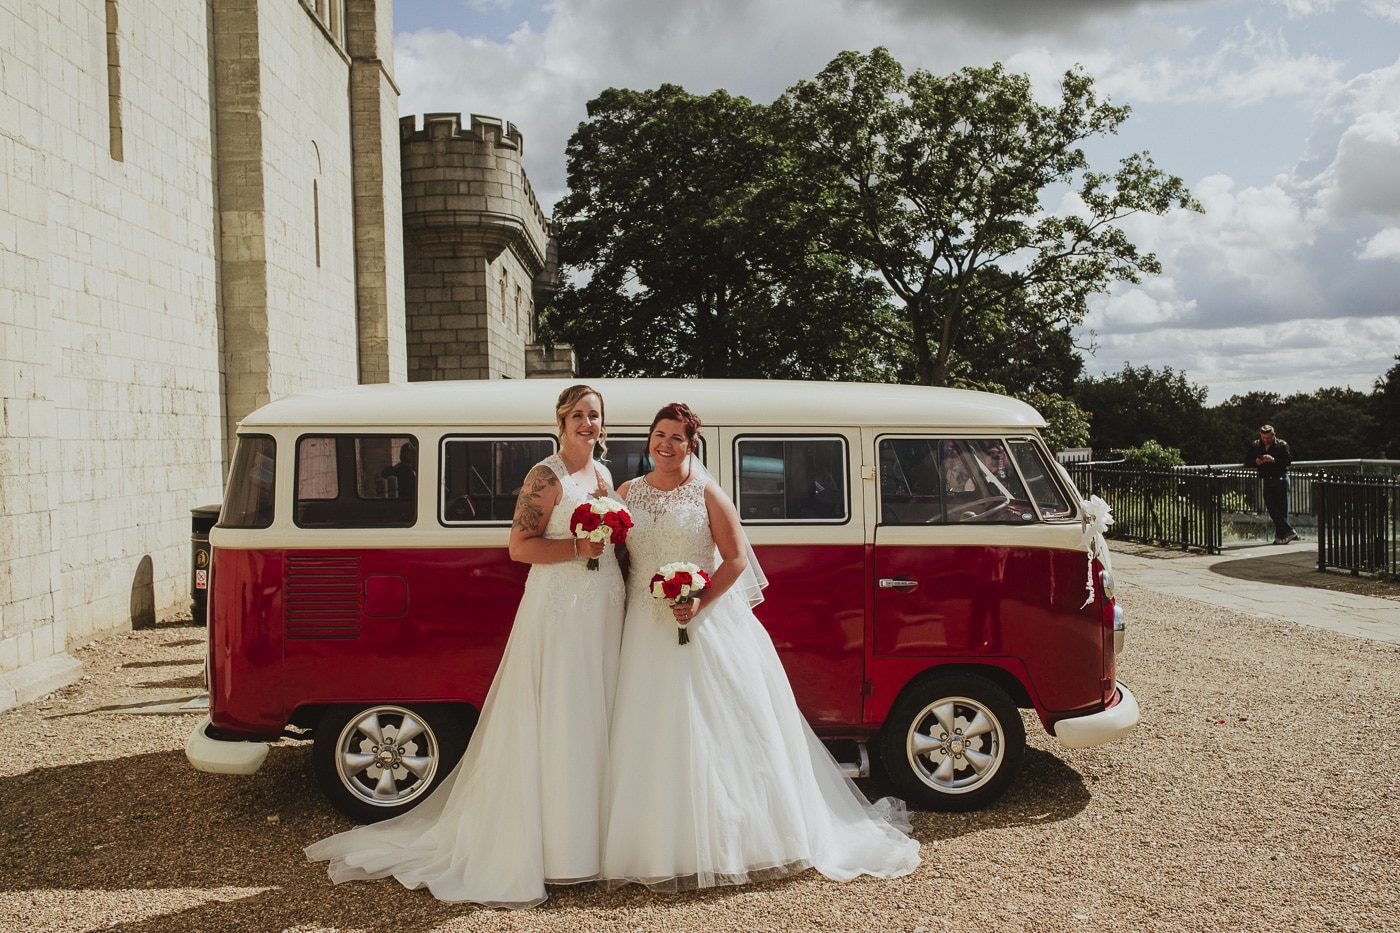 Brides in front of vw camper for wedding by Joshua Wyborn photography